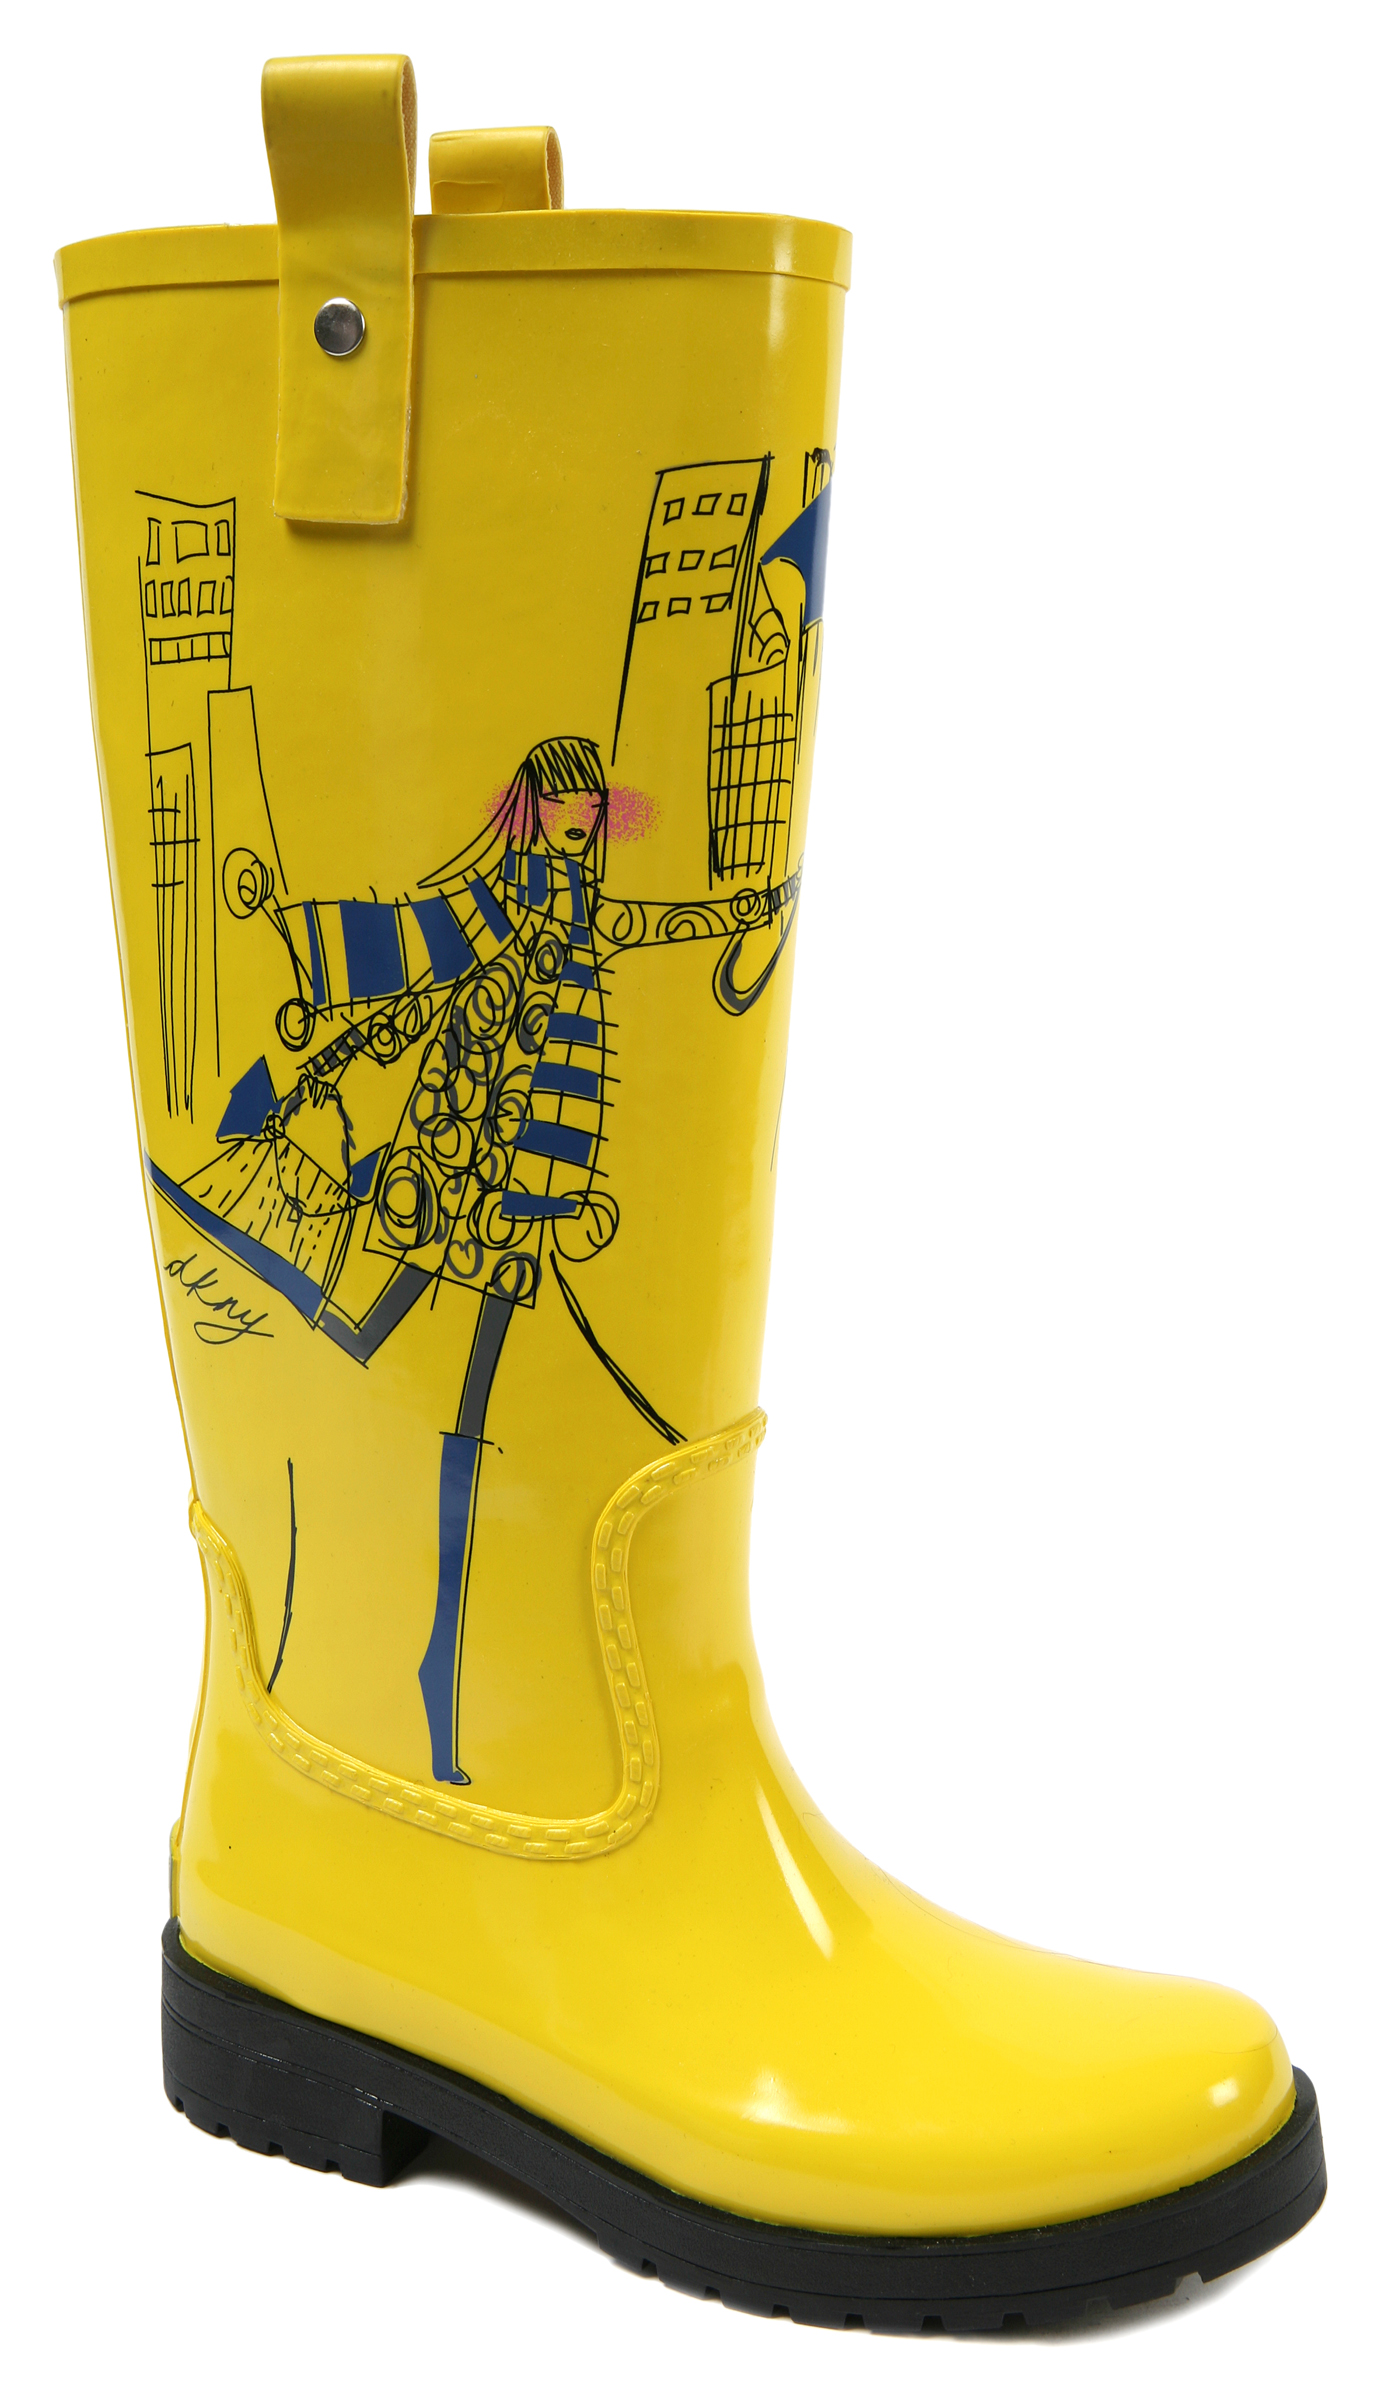 streets of paris yellow rain boots qty 37 00 size us 3 4